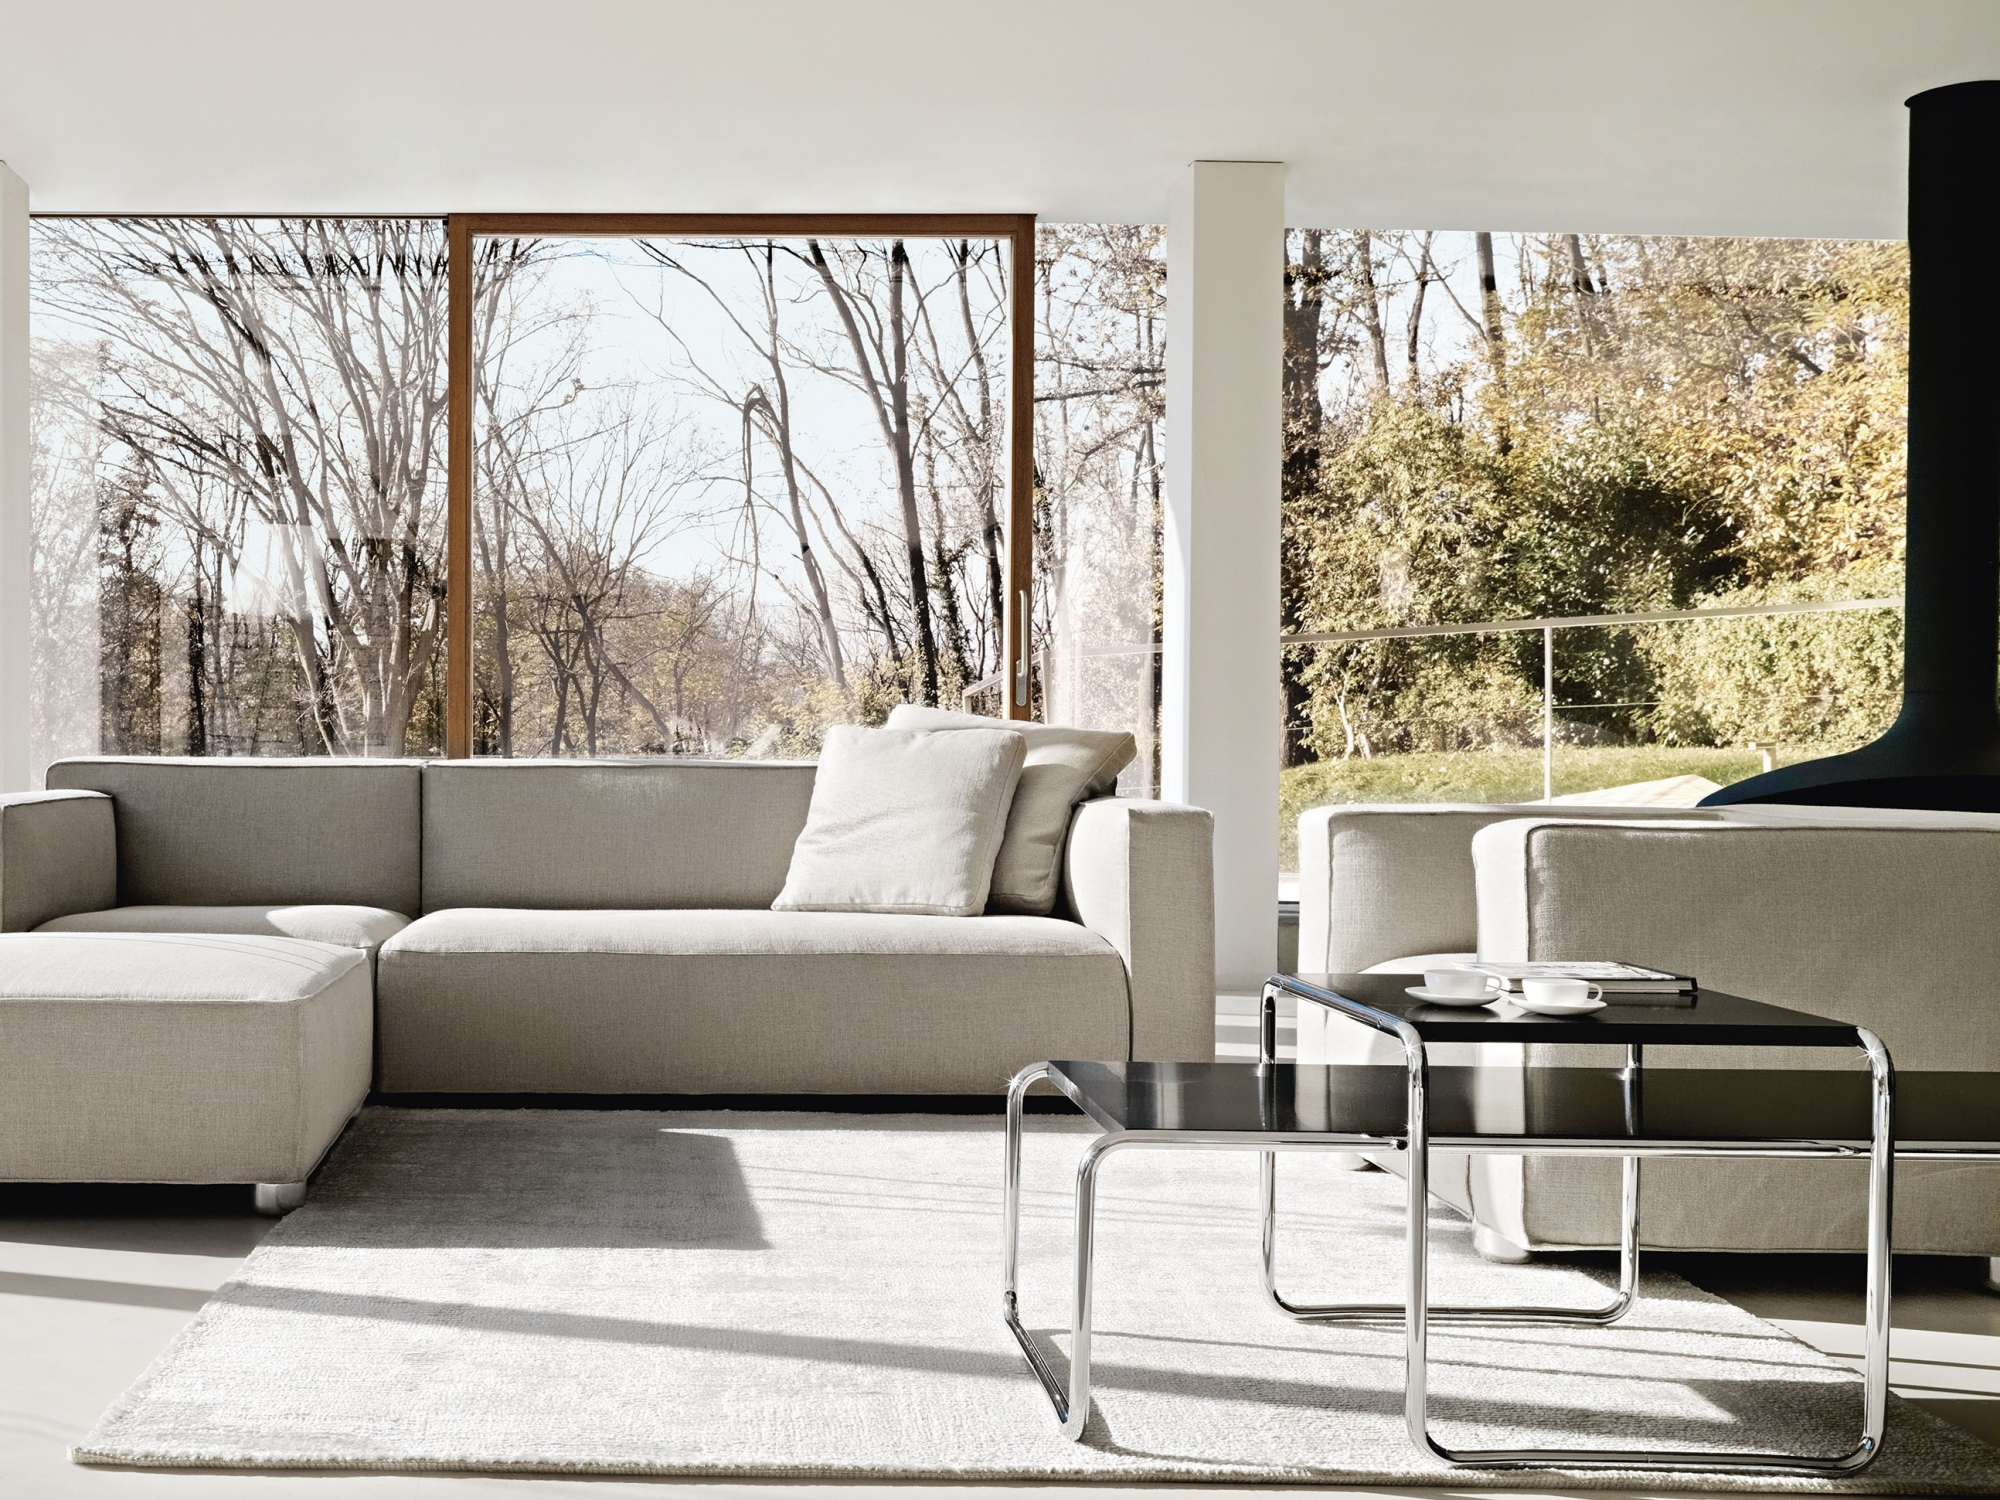 Hollace Cluny Breuer Laccio Tables By Marcel Breuer Knoll